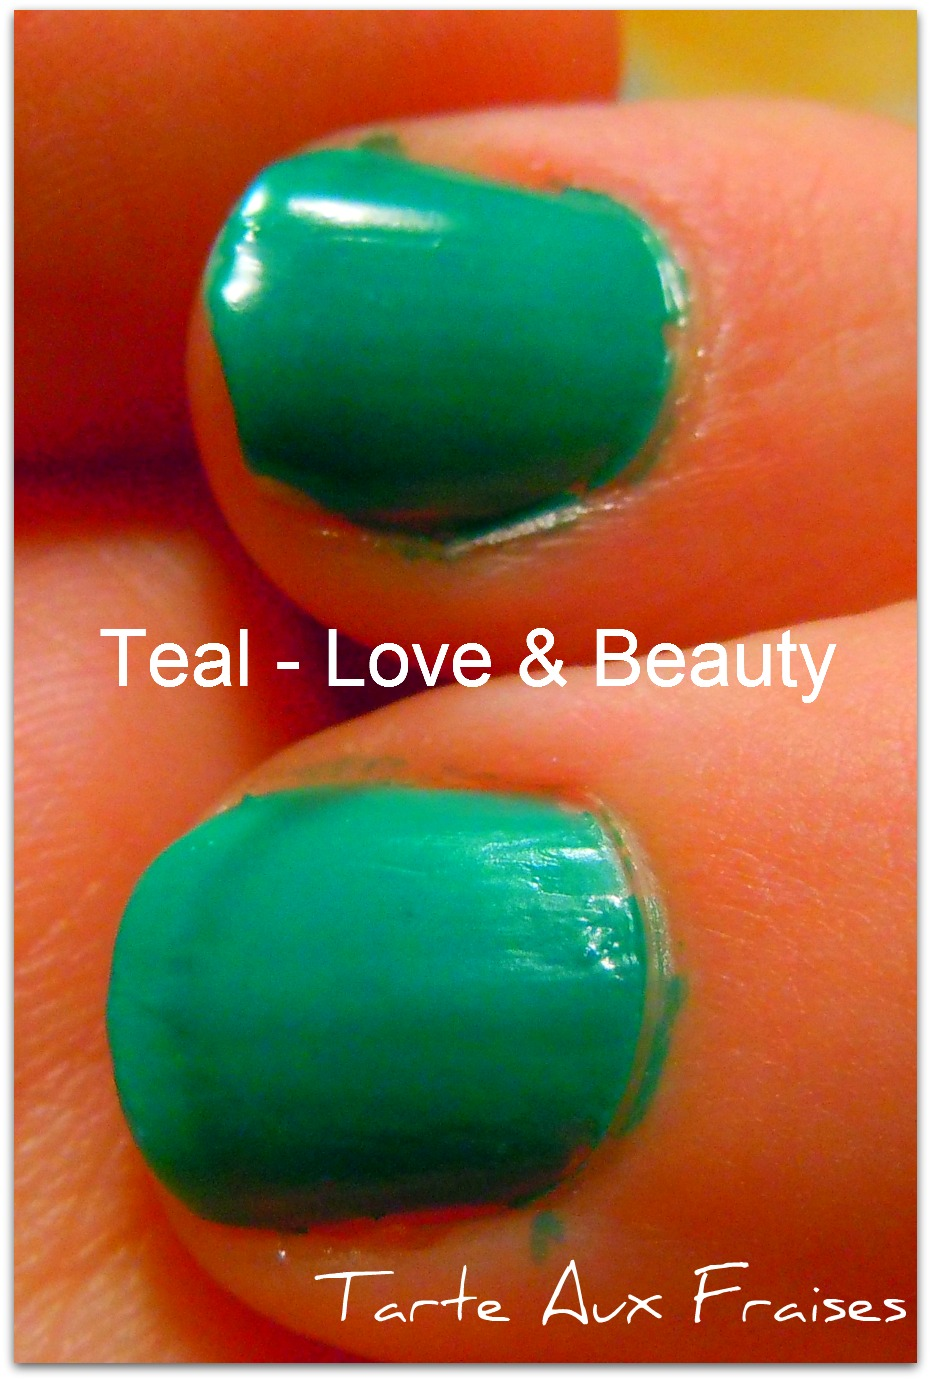 Tarte Aux Fraises: Nail Polish: Forever 21 - Love and Beauty - Teal